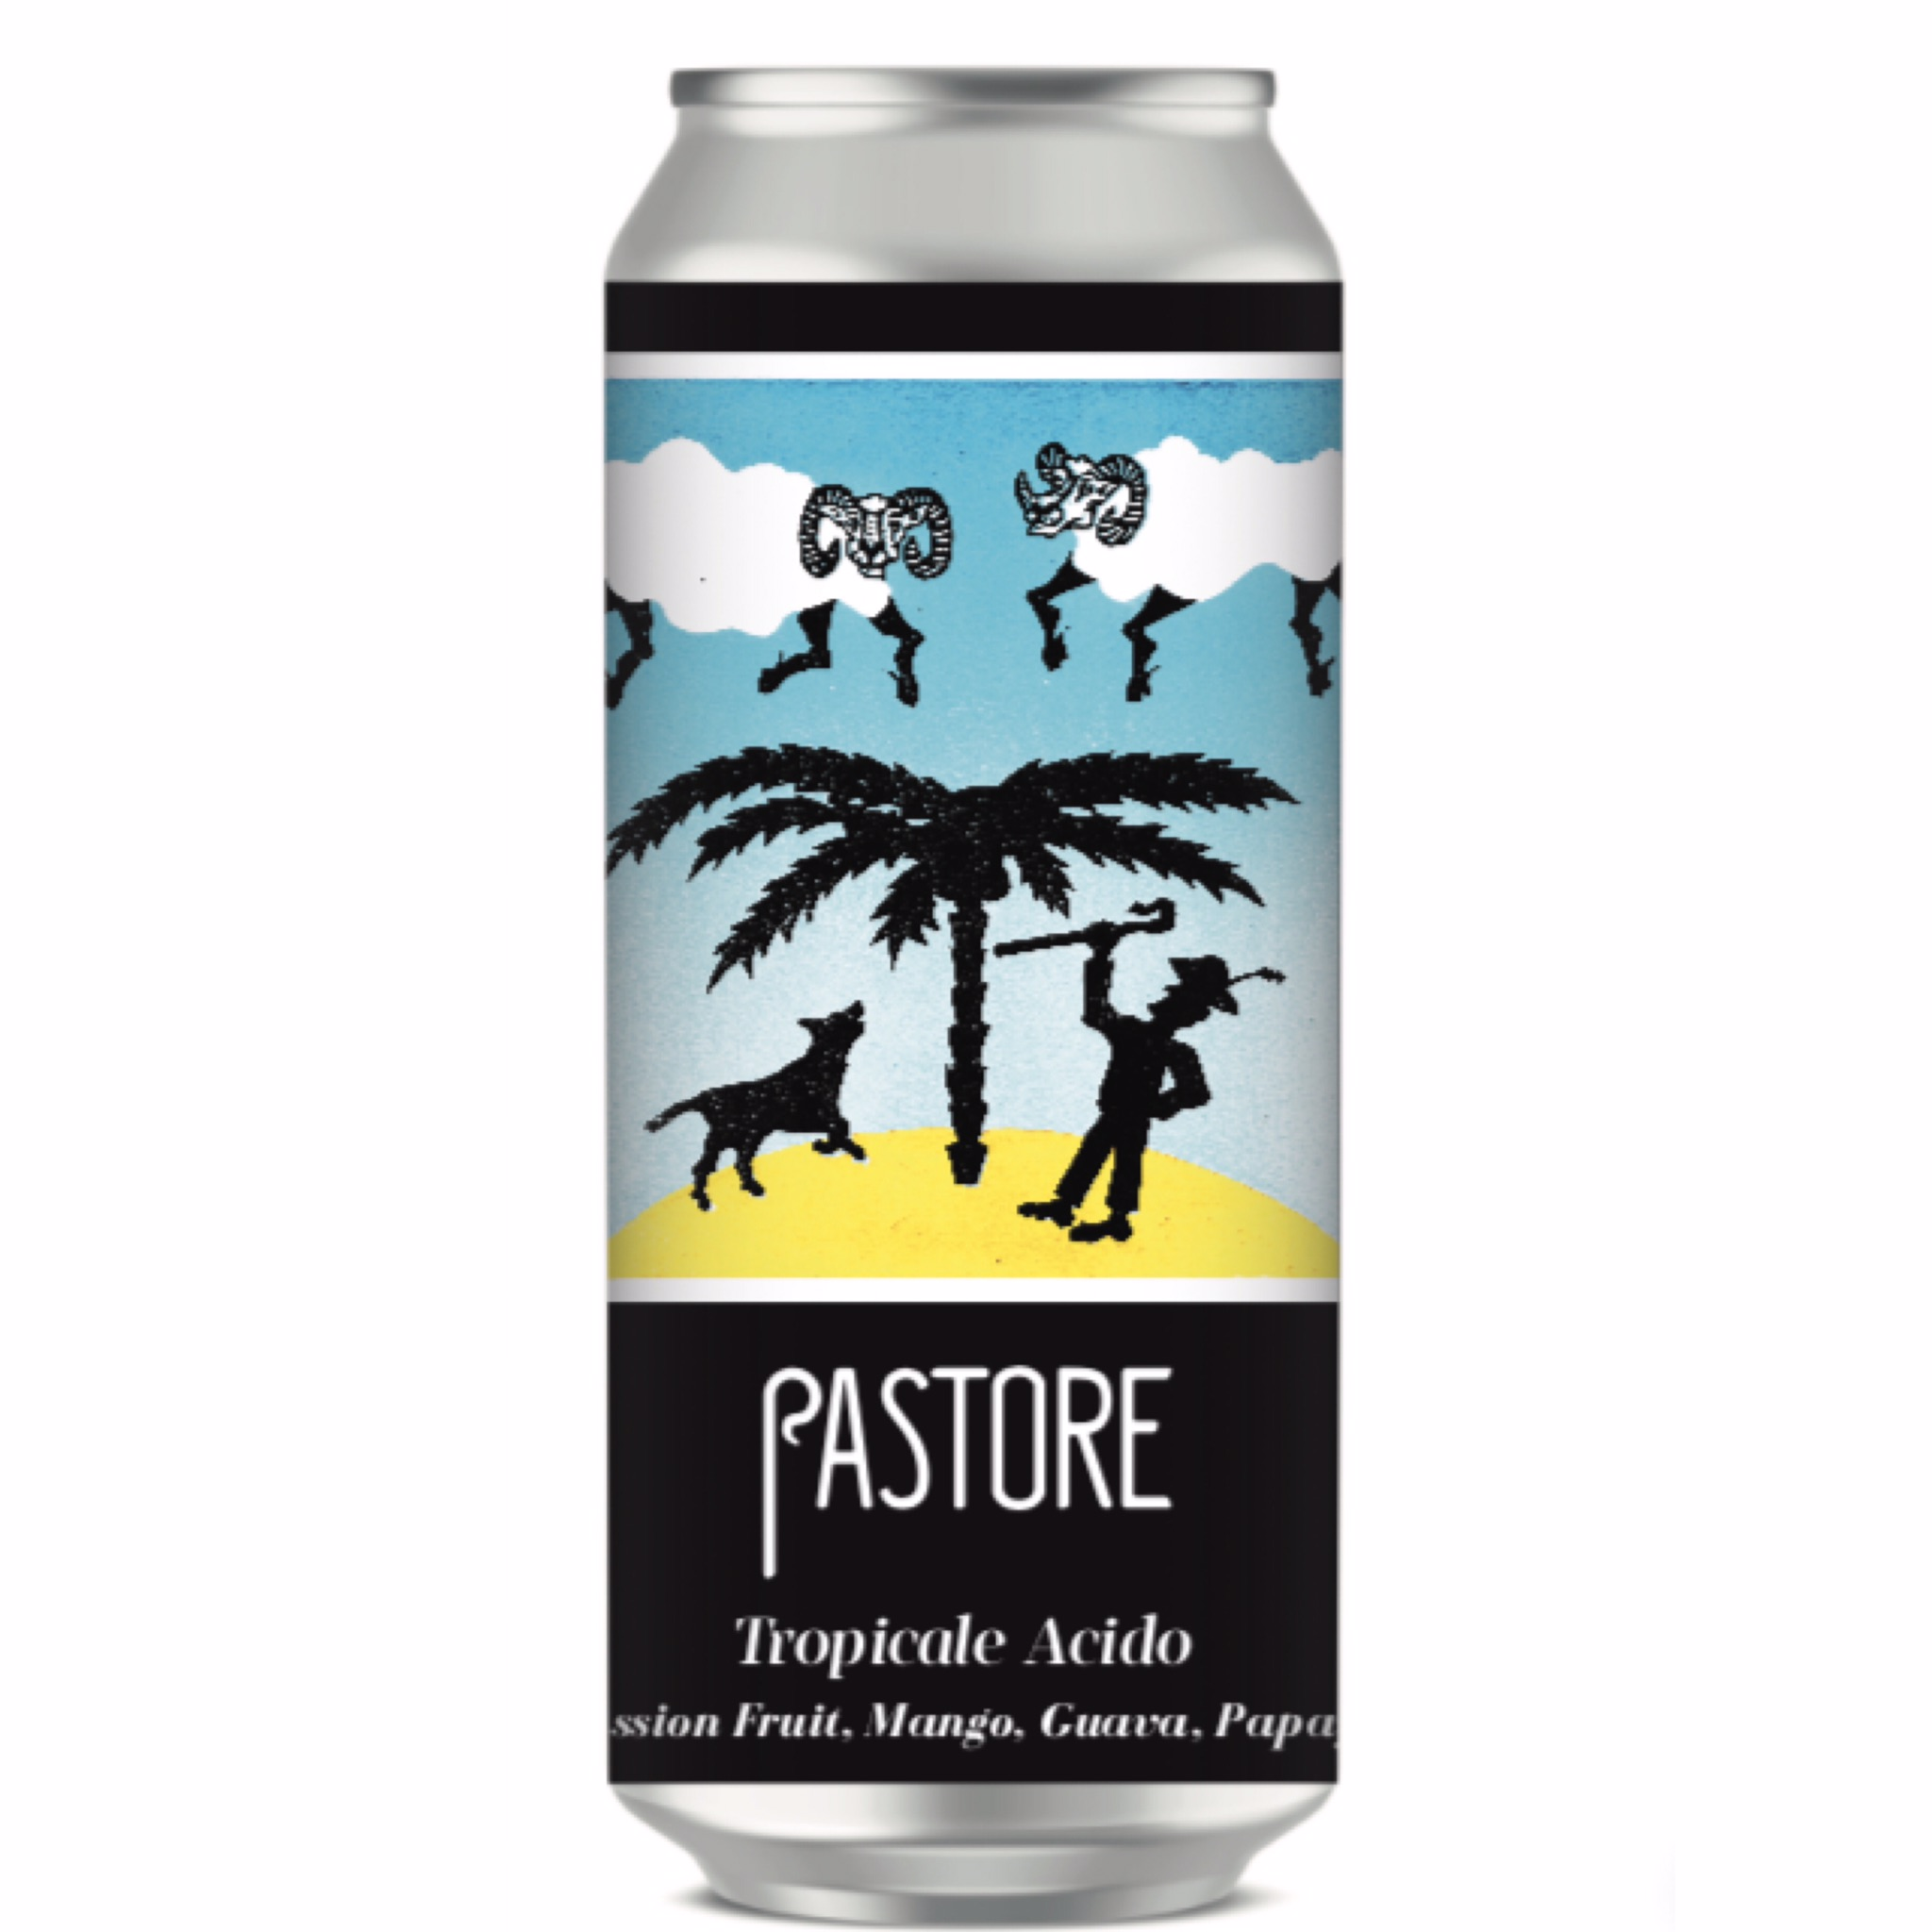 Tropicale Acido Imperial  Waterbeach Weisse 7% 440ml Pastore Brewing & Blending